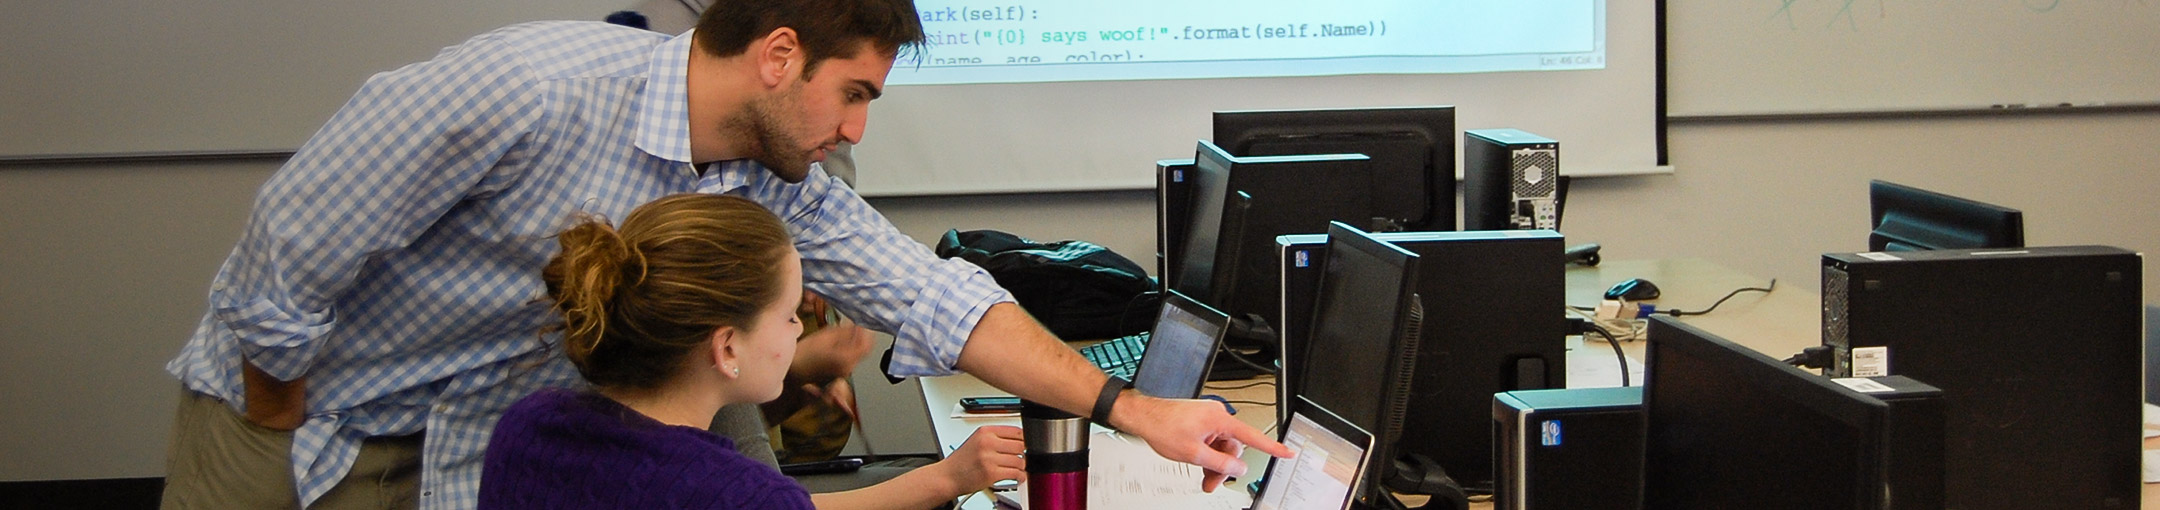 Professor helping a student at a computer in a lab.